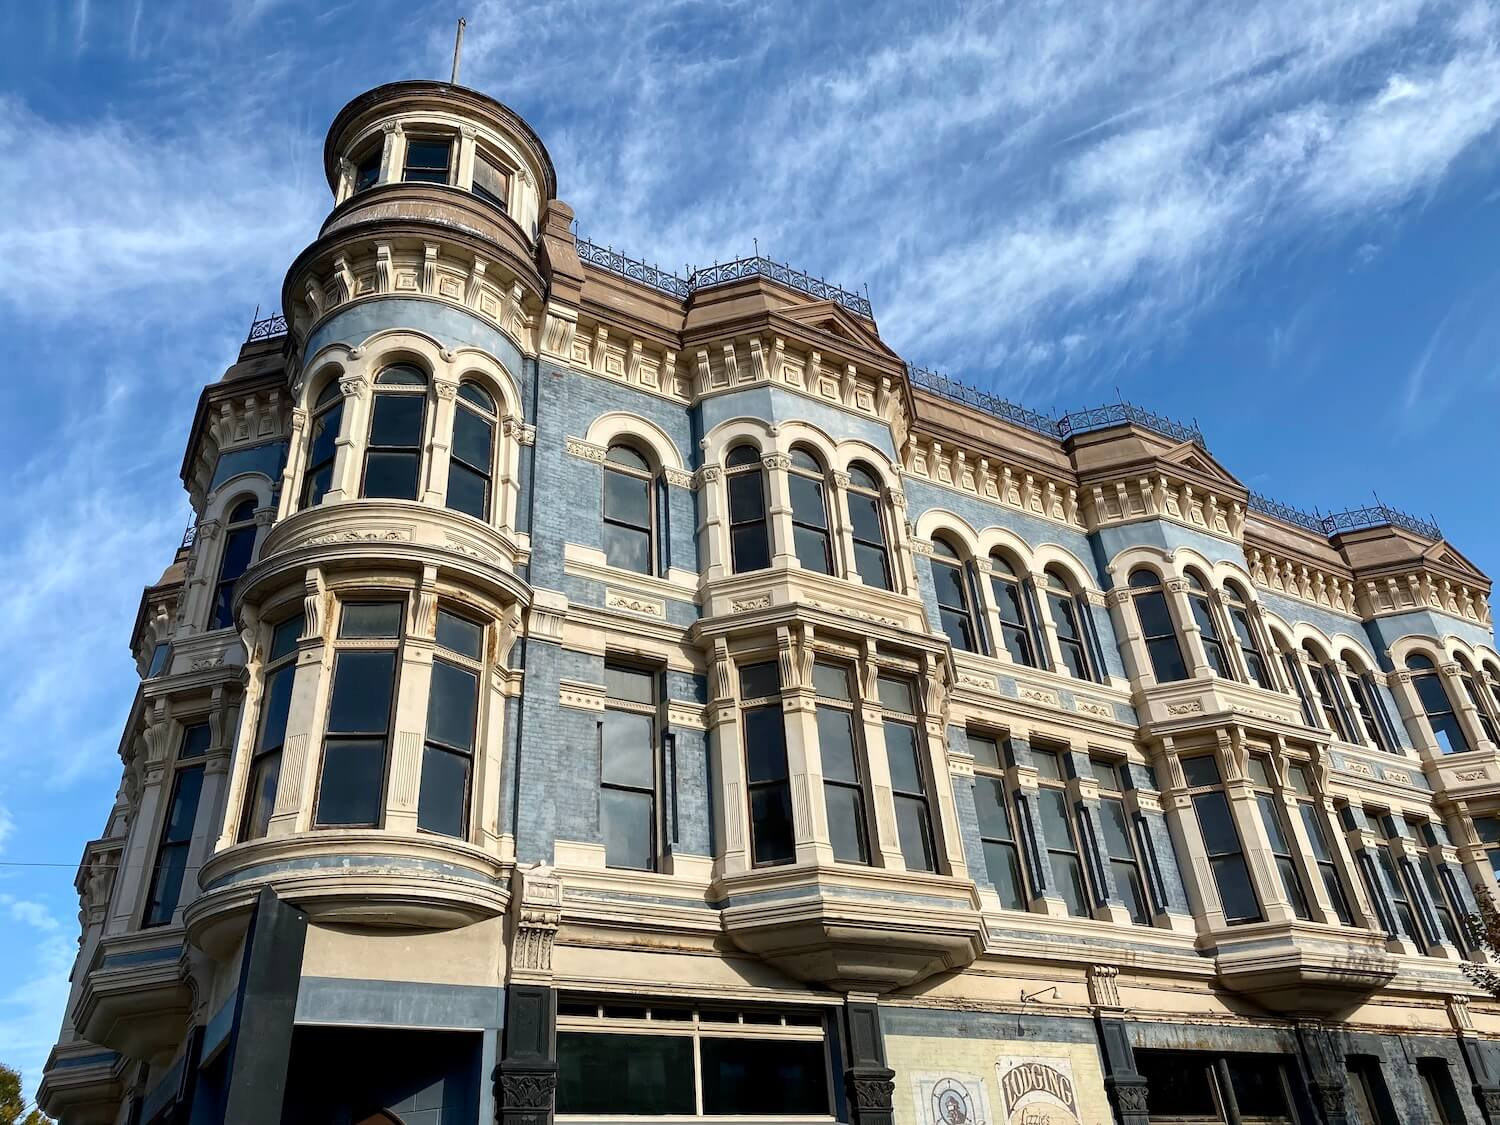 An ornate victorian era building inspires thinking about bygone eras of the seaport town of Port Townsend, Washington. There are so many things to do here, like glance up at this blue and white painted building.